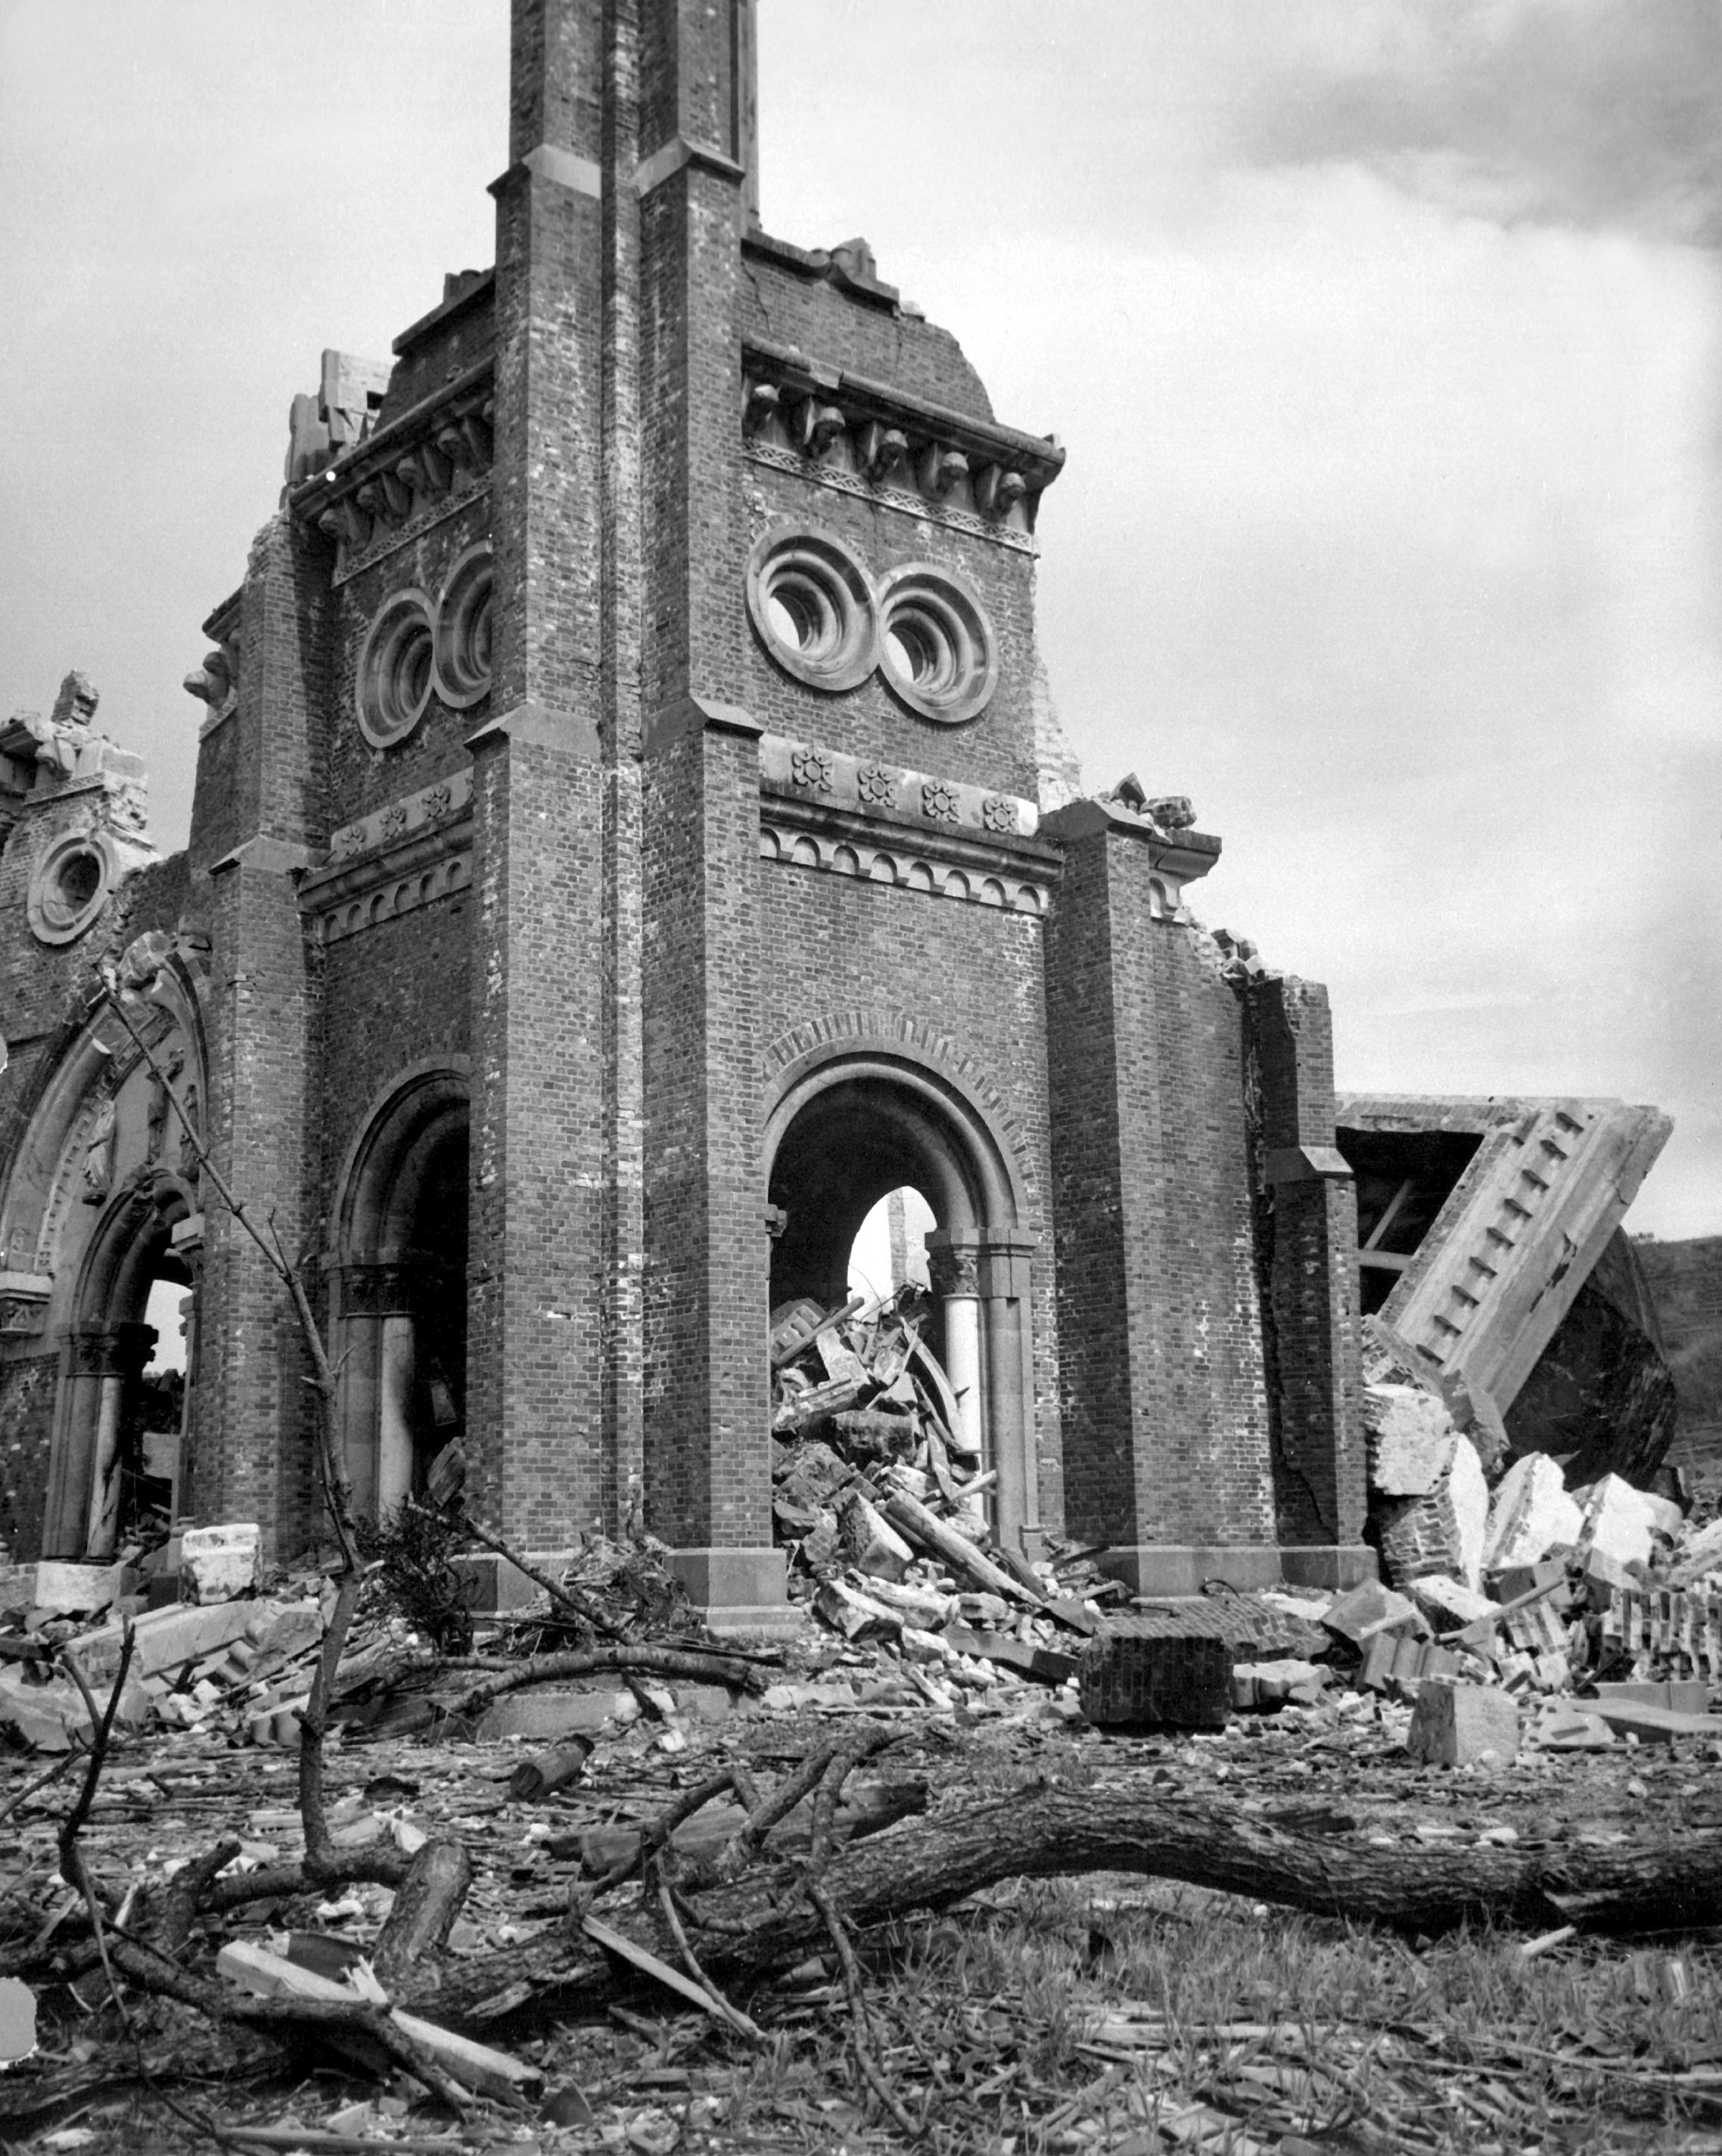 A cathedral in Nagasaki after the bombing.